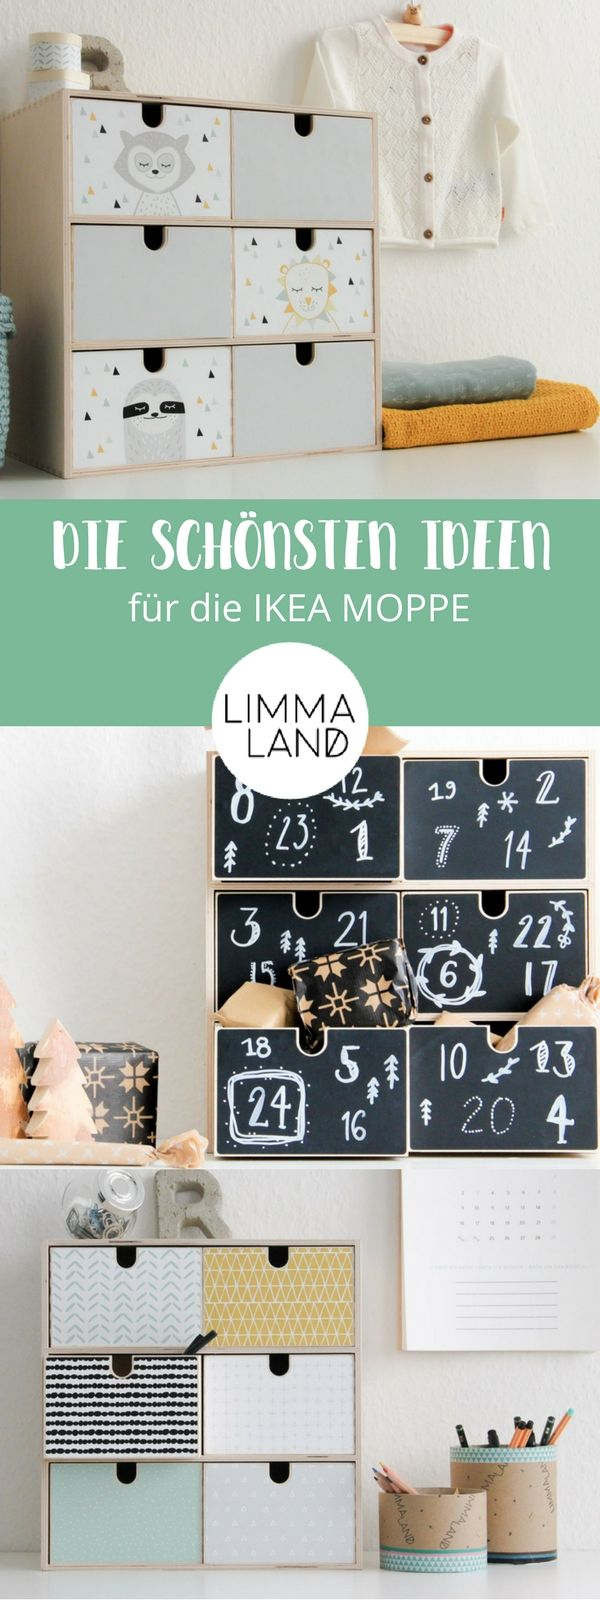 IKEA mini commode: The best ideas for the MOPPE